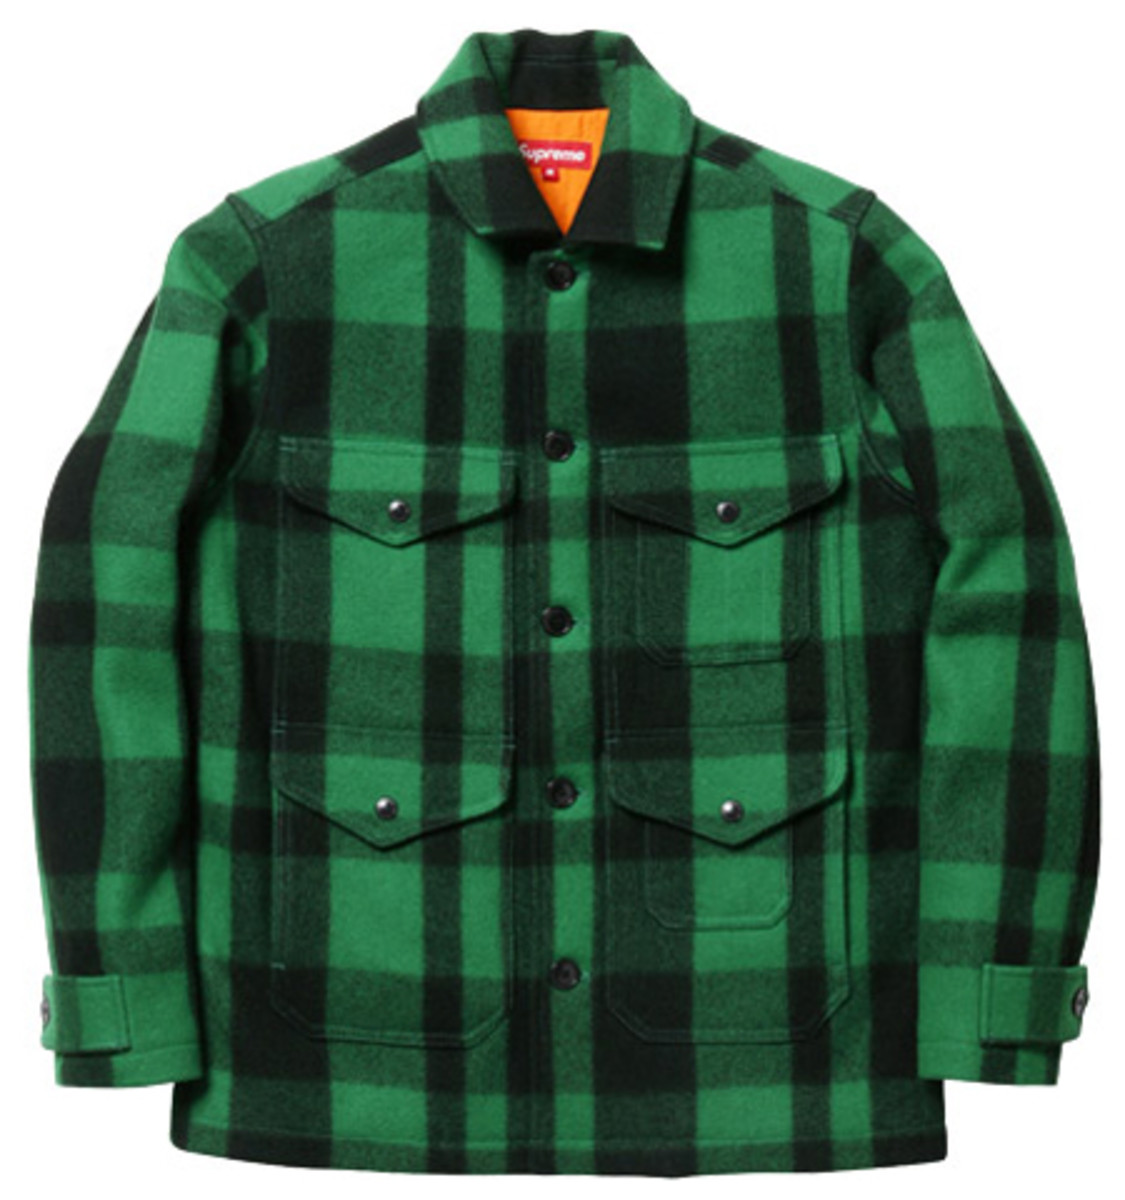 Supreme - Fall/Winter 2009 Collection - Plaid Flannel Jacket